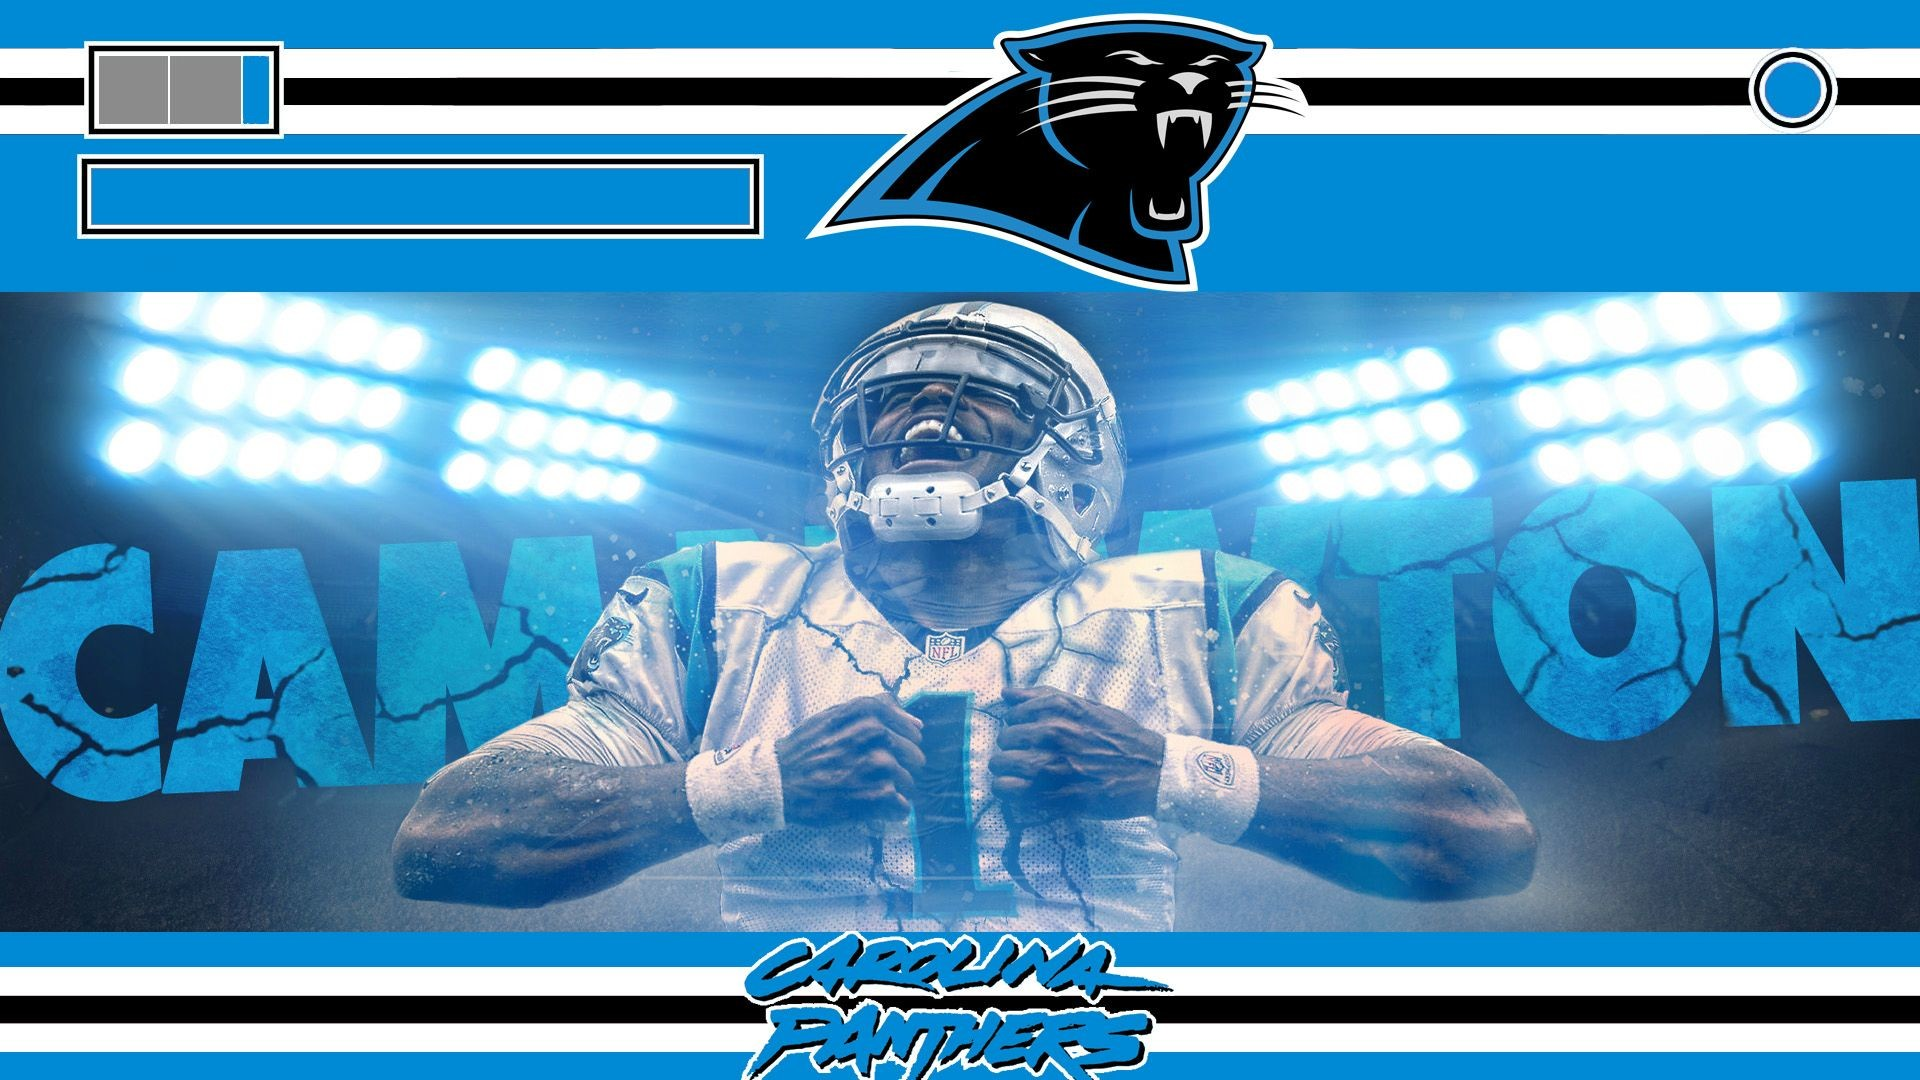 1920x1080 carolina panthers font - Google Search